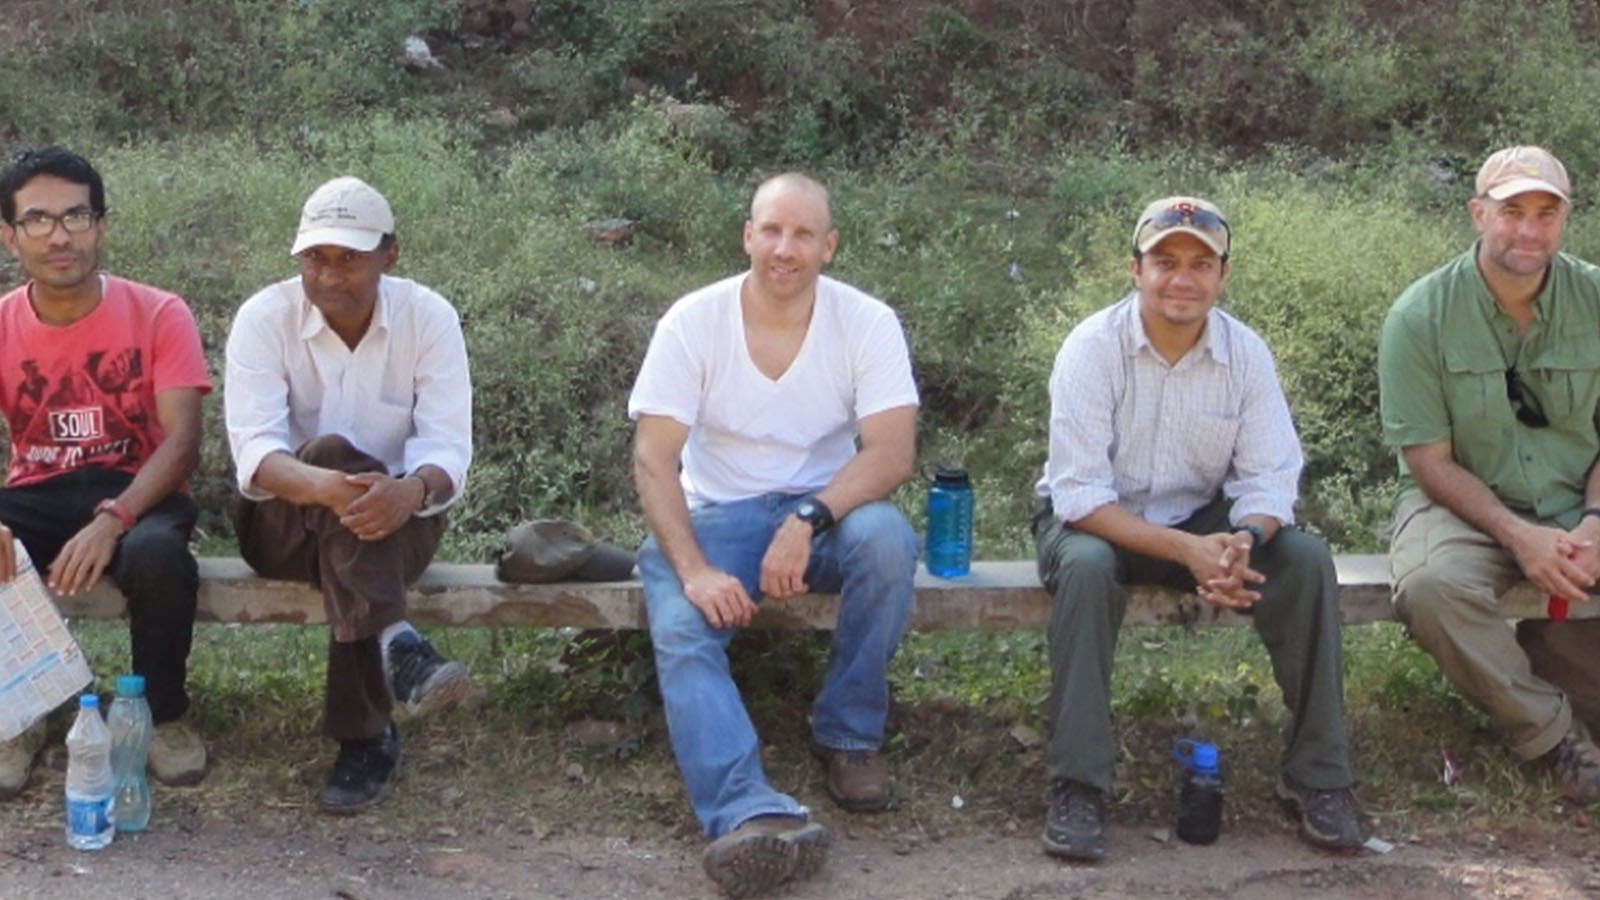 Professor Christopher Gilbert (center), at Ramnagar, is shown with members of the team, including (from left) N. P. Singh, R. Patnaik, B. Patel, and C. Campisano.